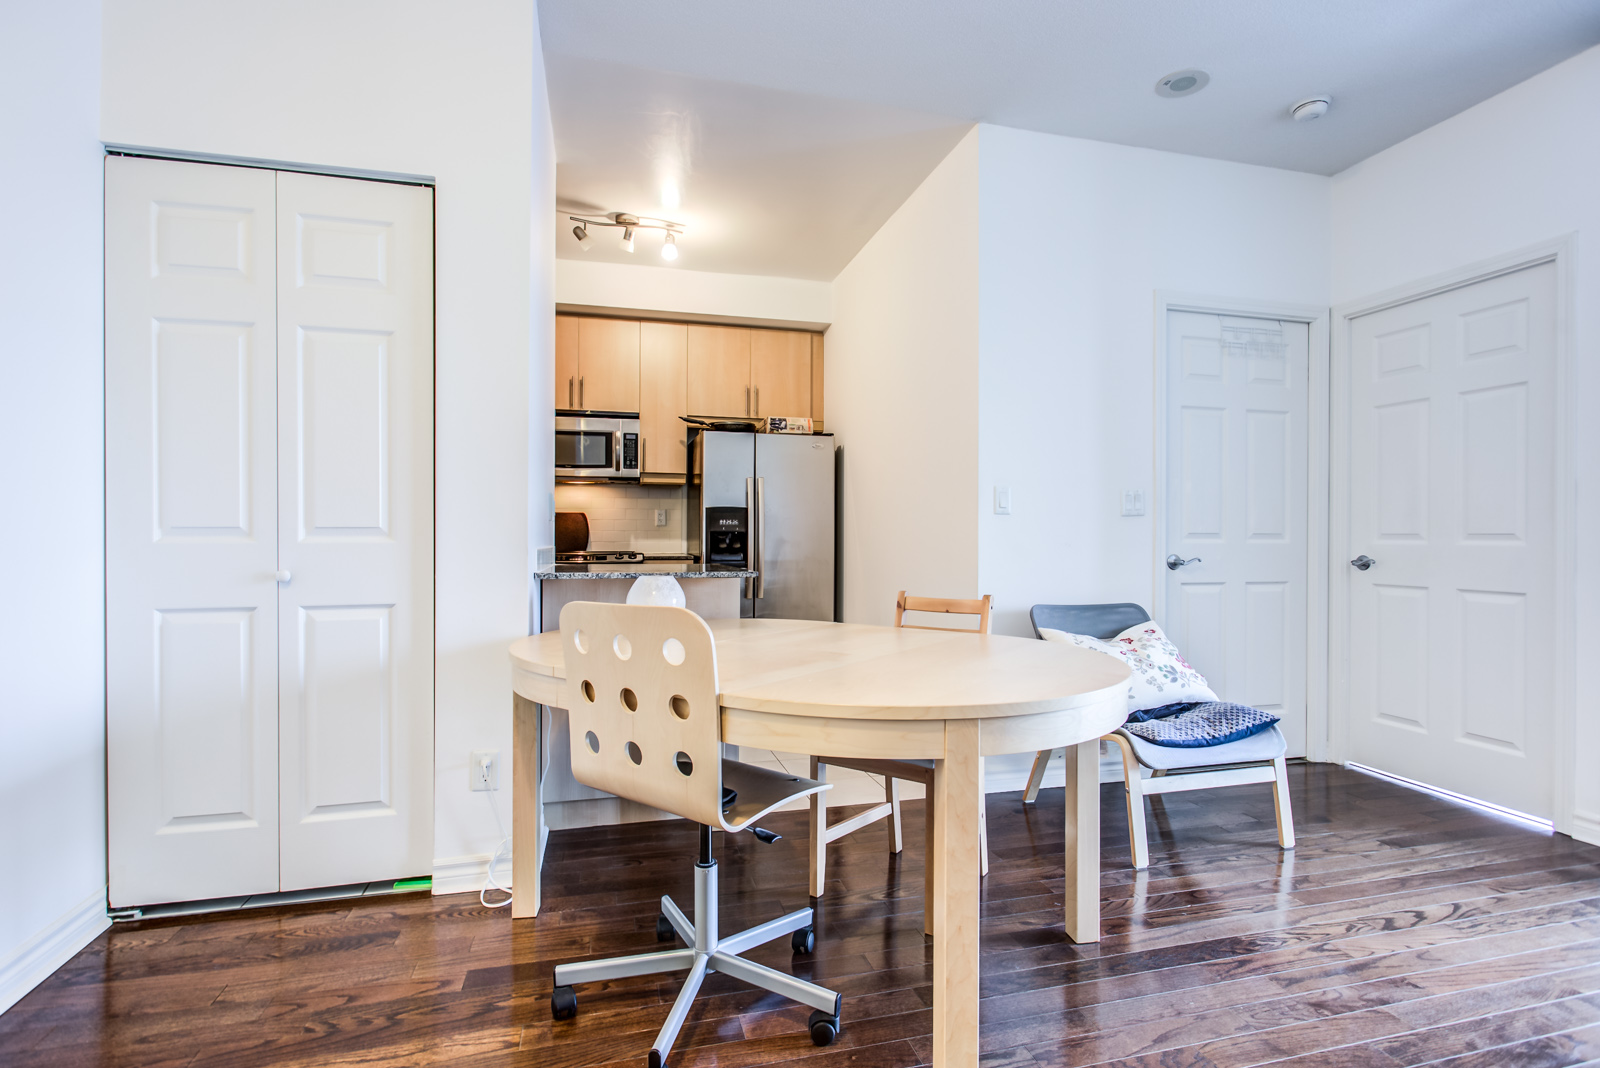 Photo of kitchen and dining room